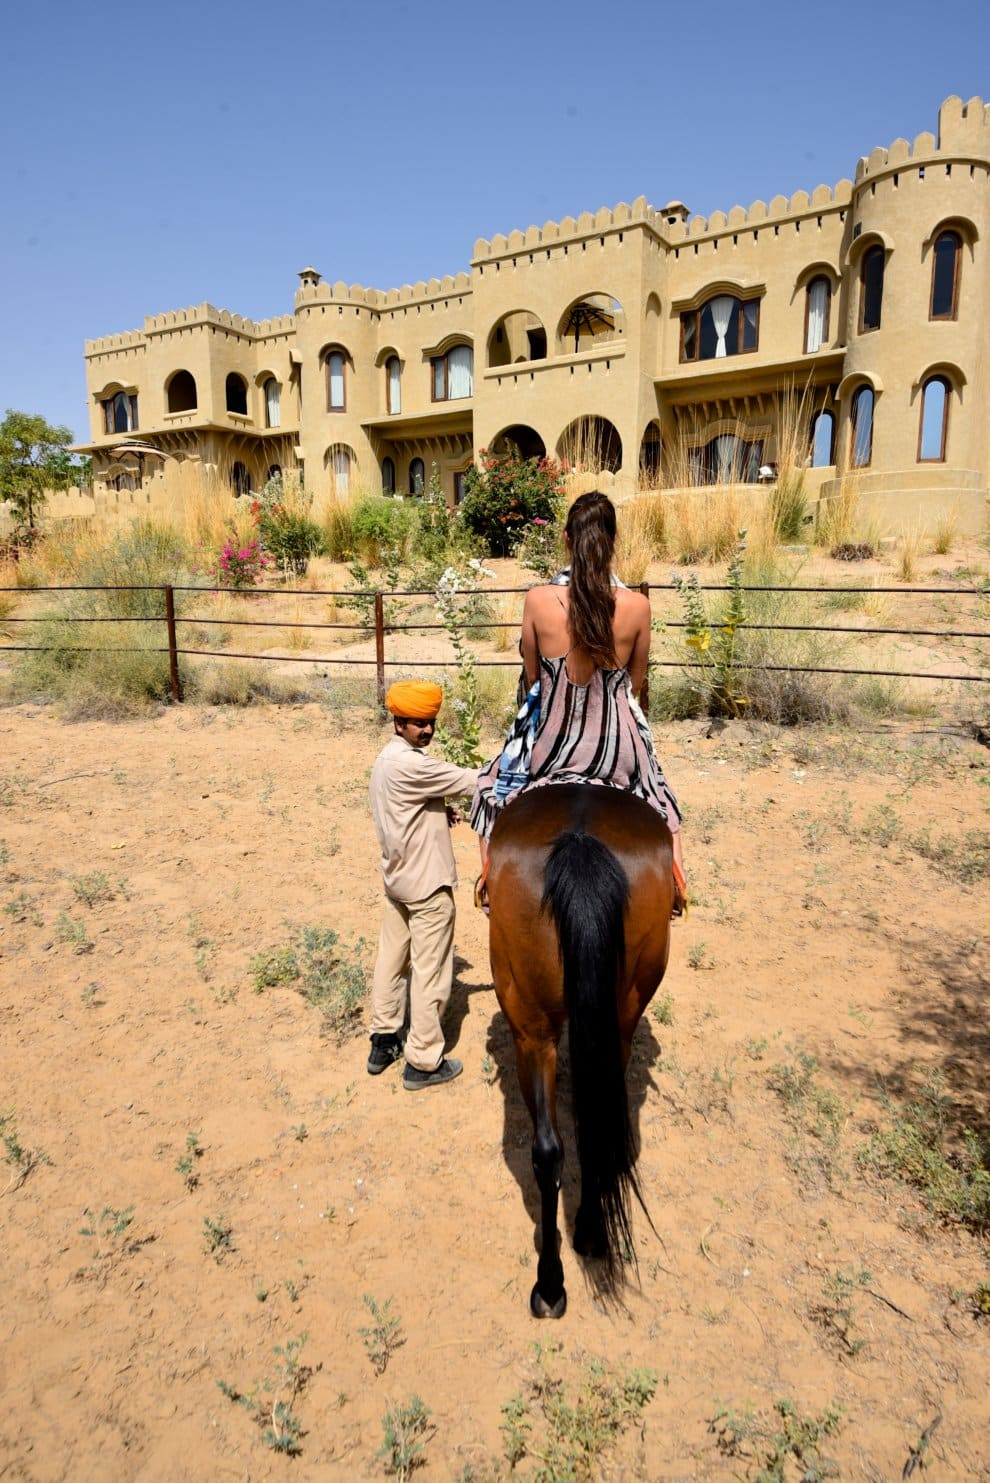 Mihir Garh Boutique Hotel House of Rohet Rajasthan India